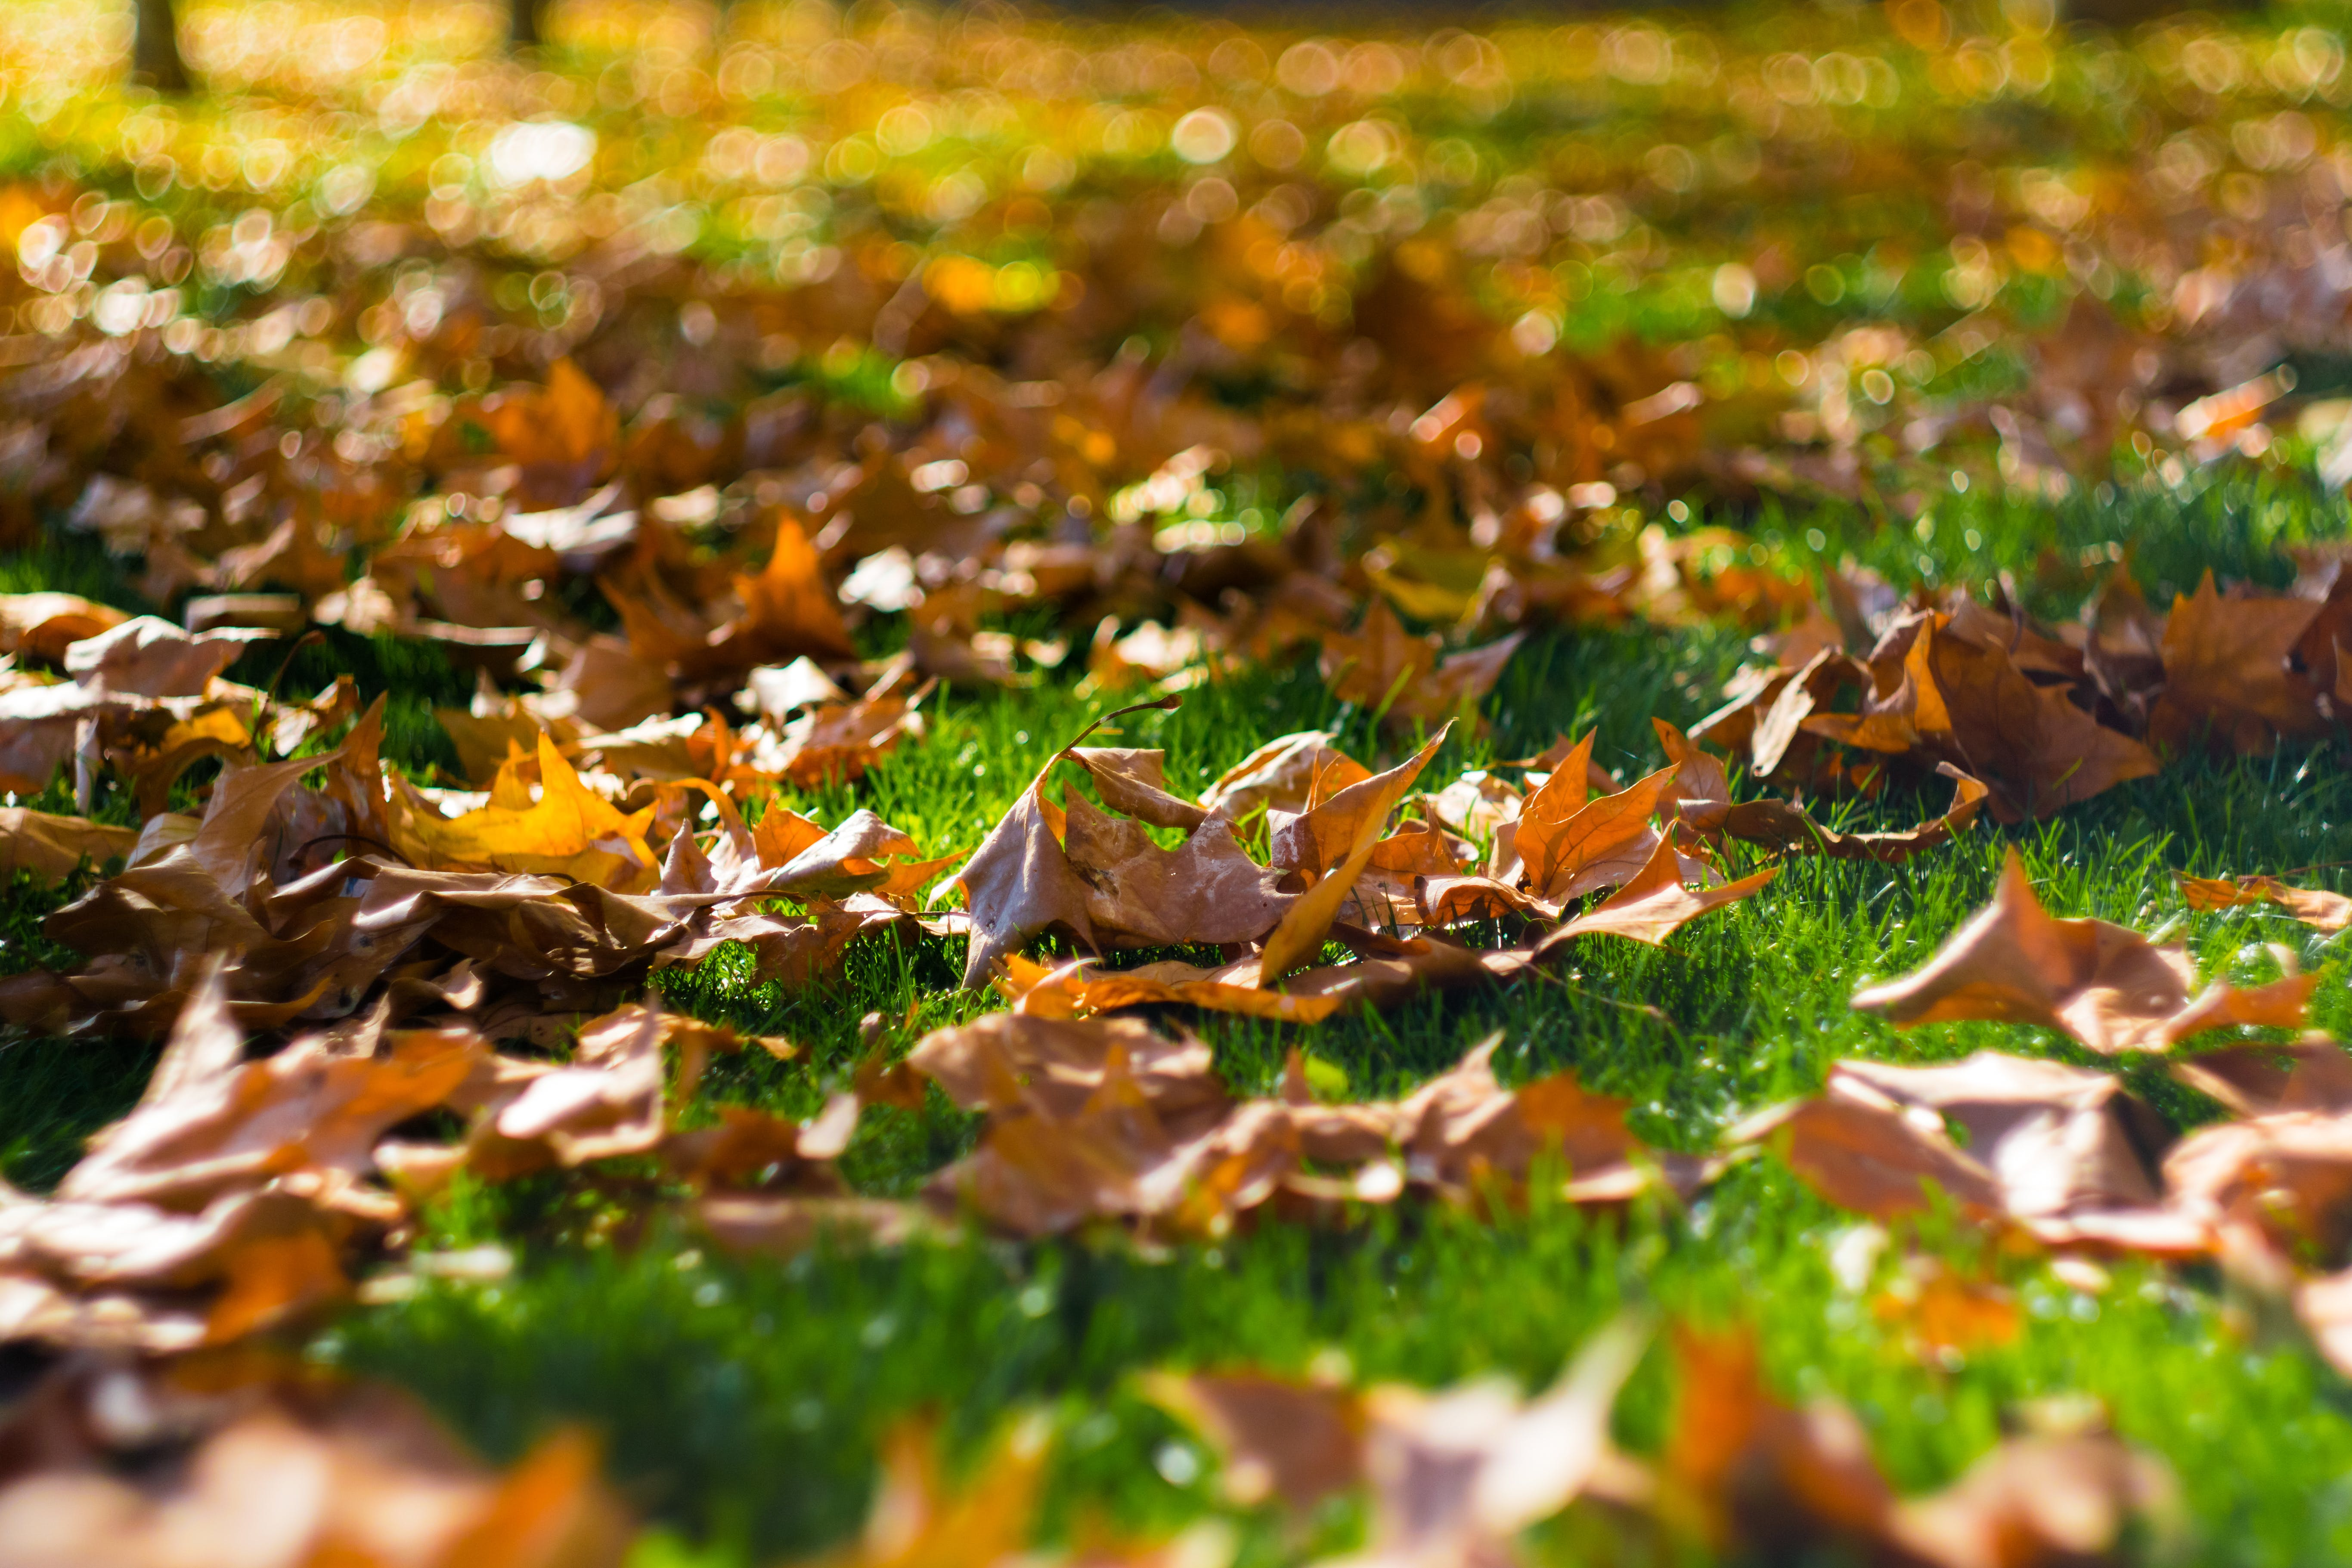 Selective Focus Photography of Brown Dried Leaves on Green Grass